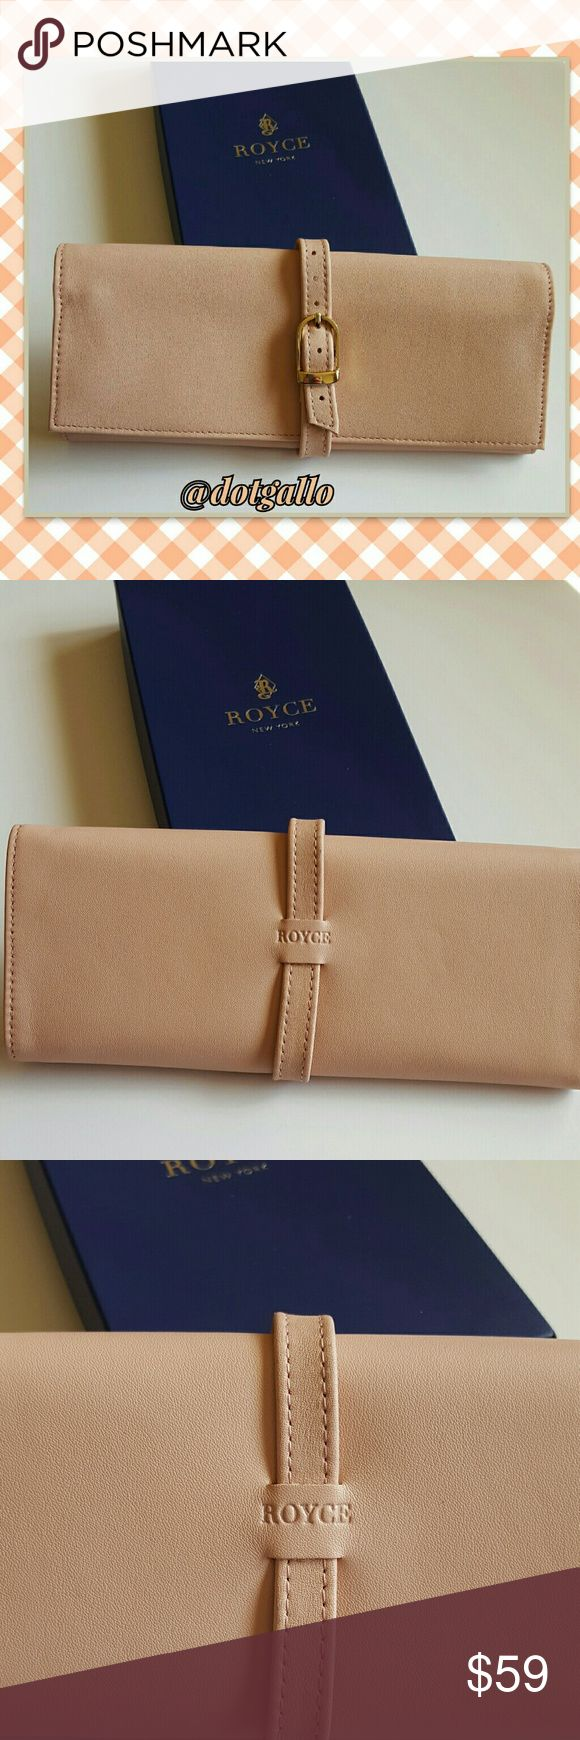 "Leather jewelry roll nib Luxury for your jewelry! Butter soft leather jewelry roll  Measures 8.5 "" x 3.5: Goldtone buckle closure  Pretty pale pink, beige color New in box Royce Leather Bags Travel Bags"